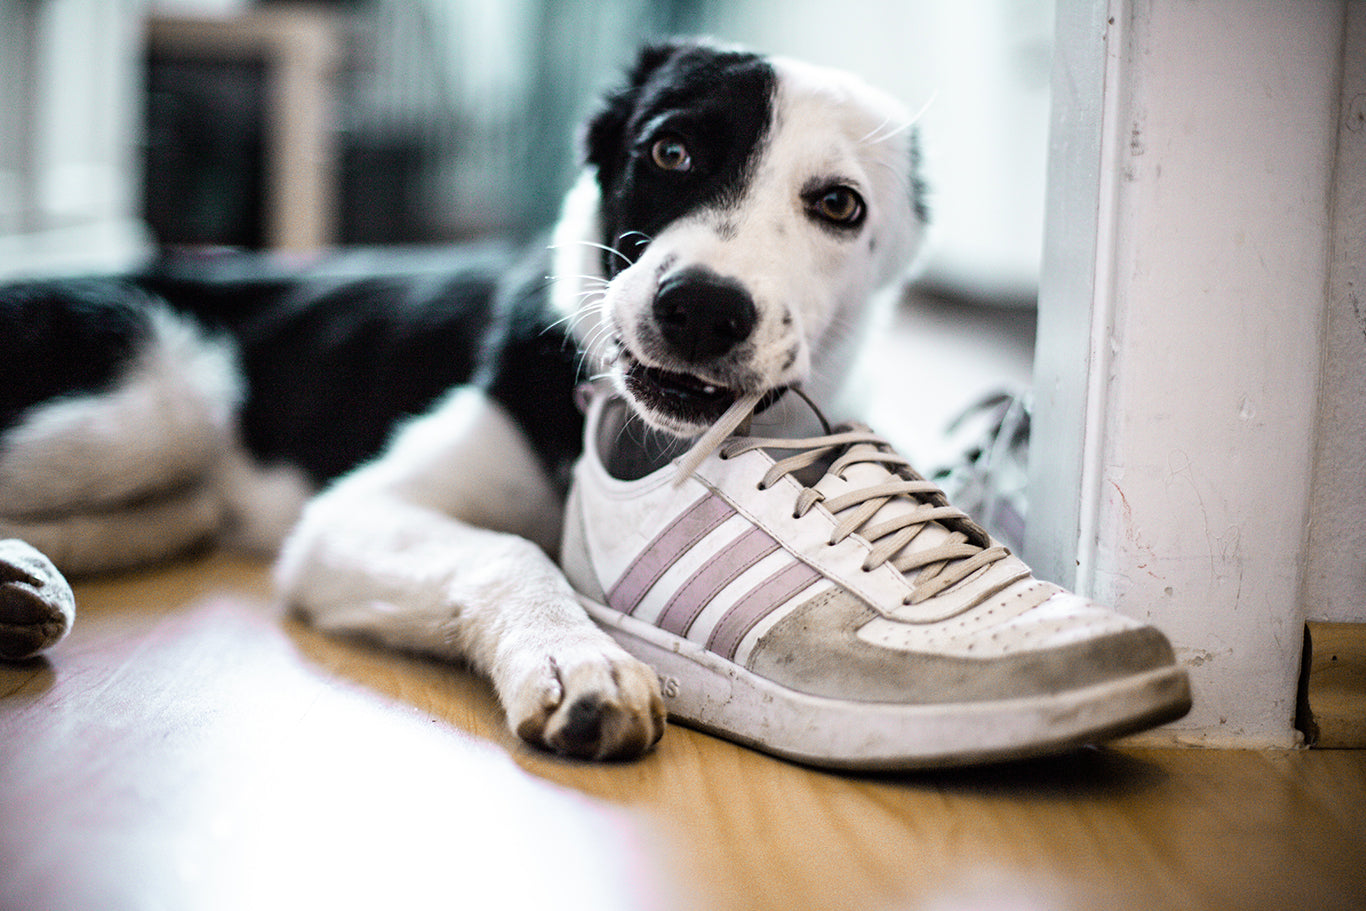 Stop Destructive Chewing - Dog Chewing Shoe